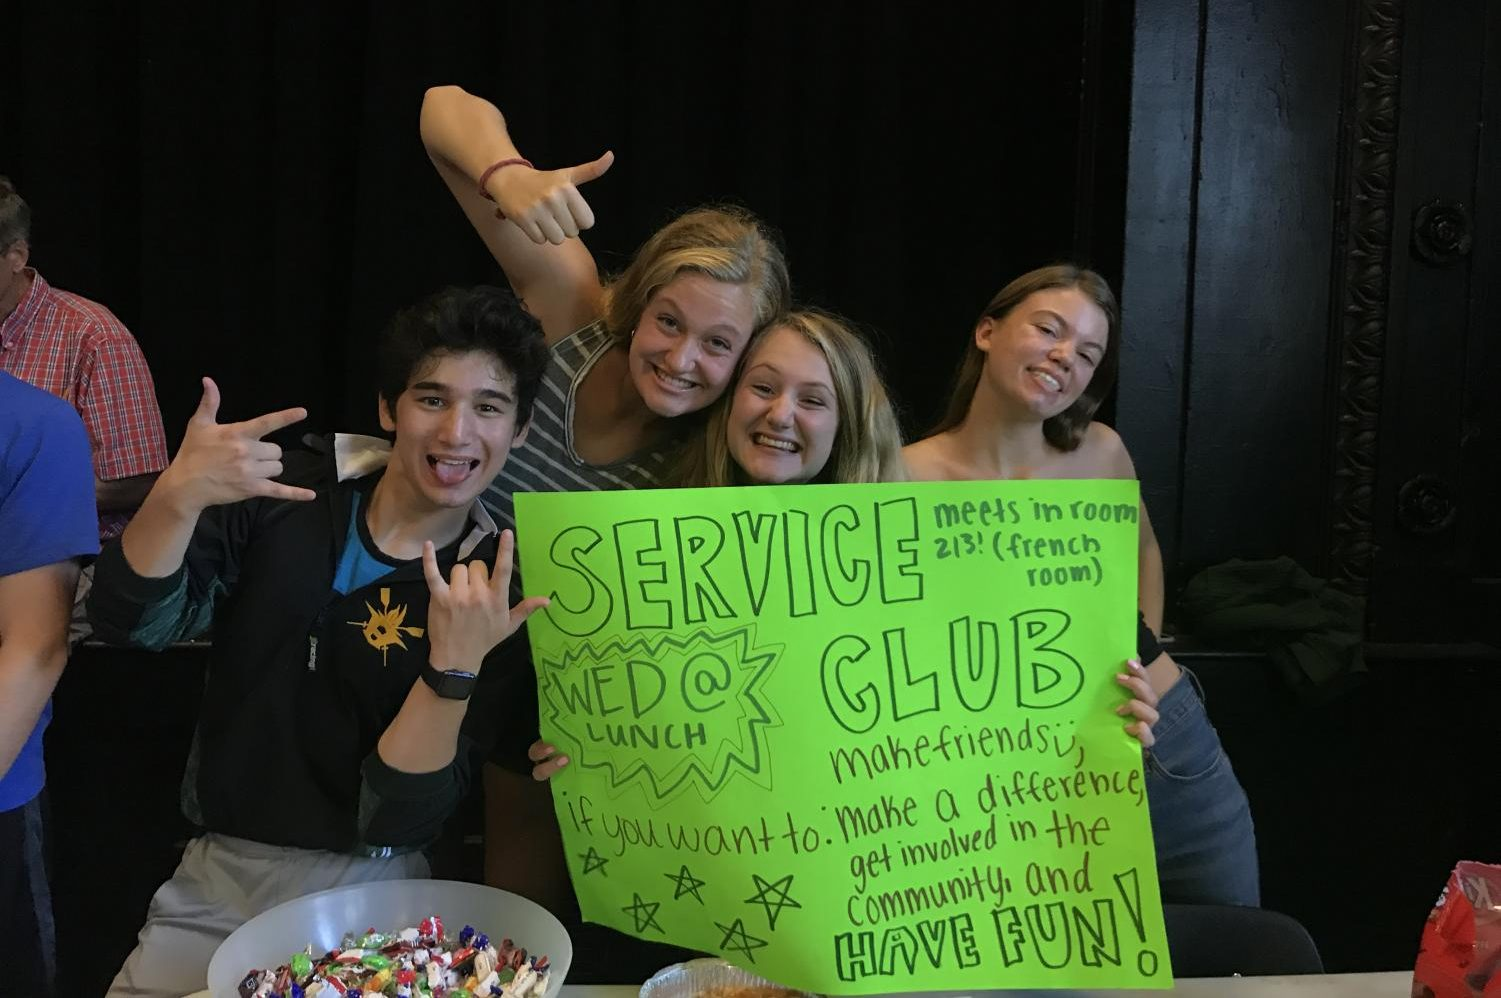 Service Club leaders Will Panitch, Ruby Taylor, Chava Makman-Levinson and Paige Duff